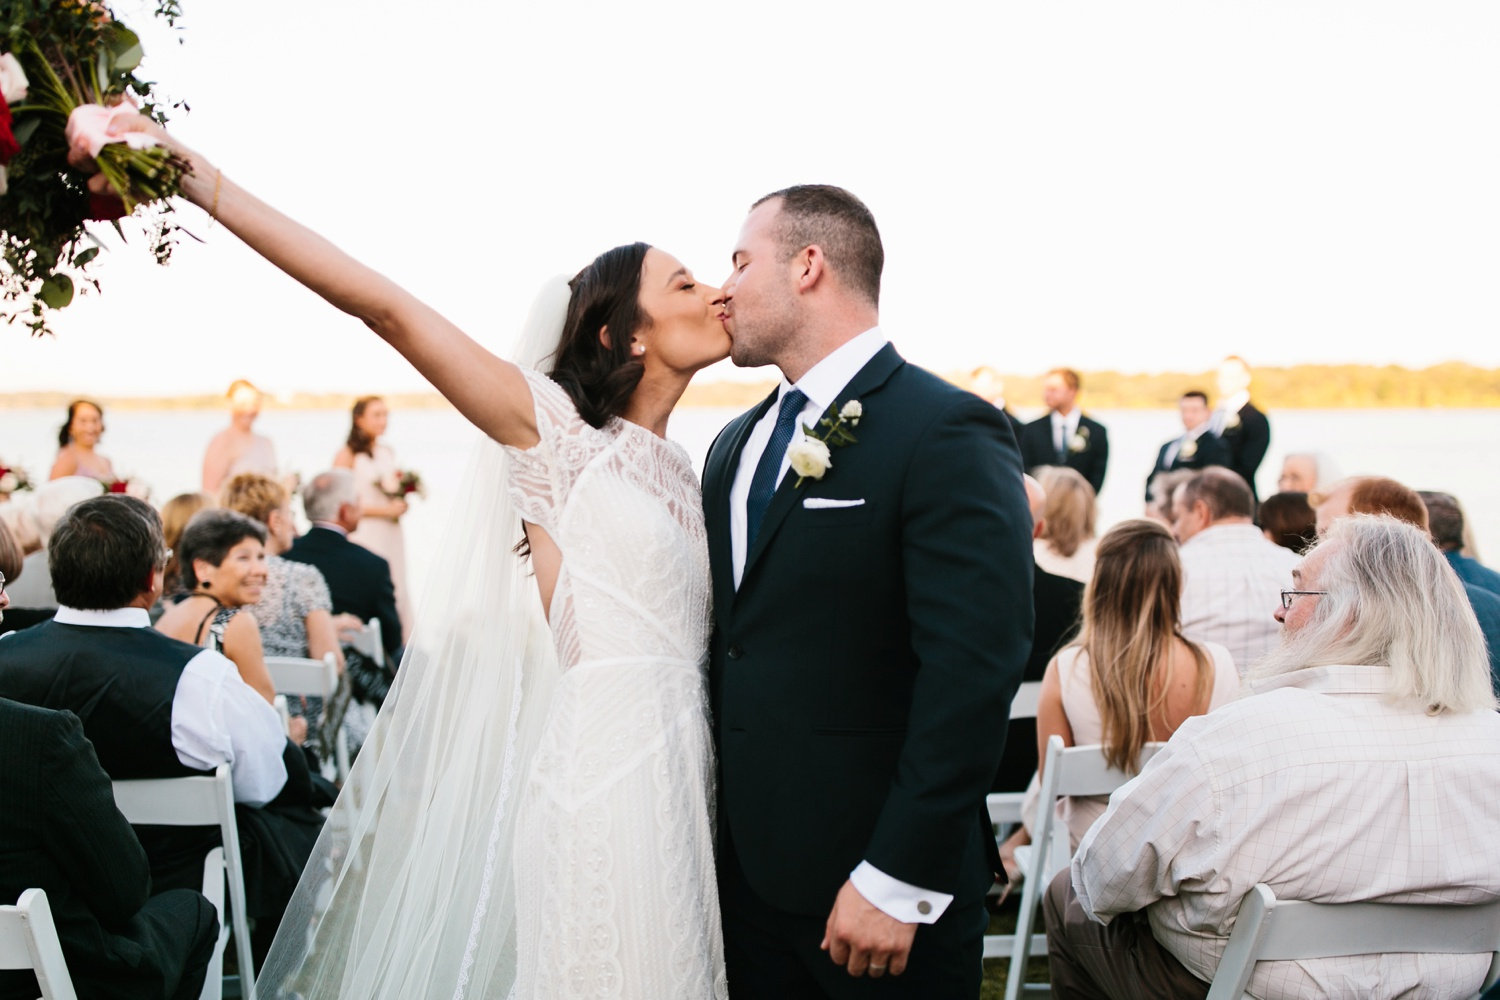 Kadee + Tyler | a raw, emotional wedding at the Filter Building on White Rock Lake in Dallas, TX by North Texas Wedding Photographer, Rachel Meagan Photography 149